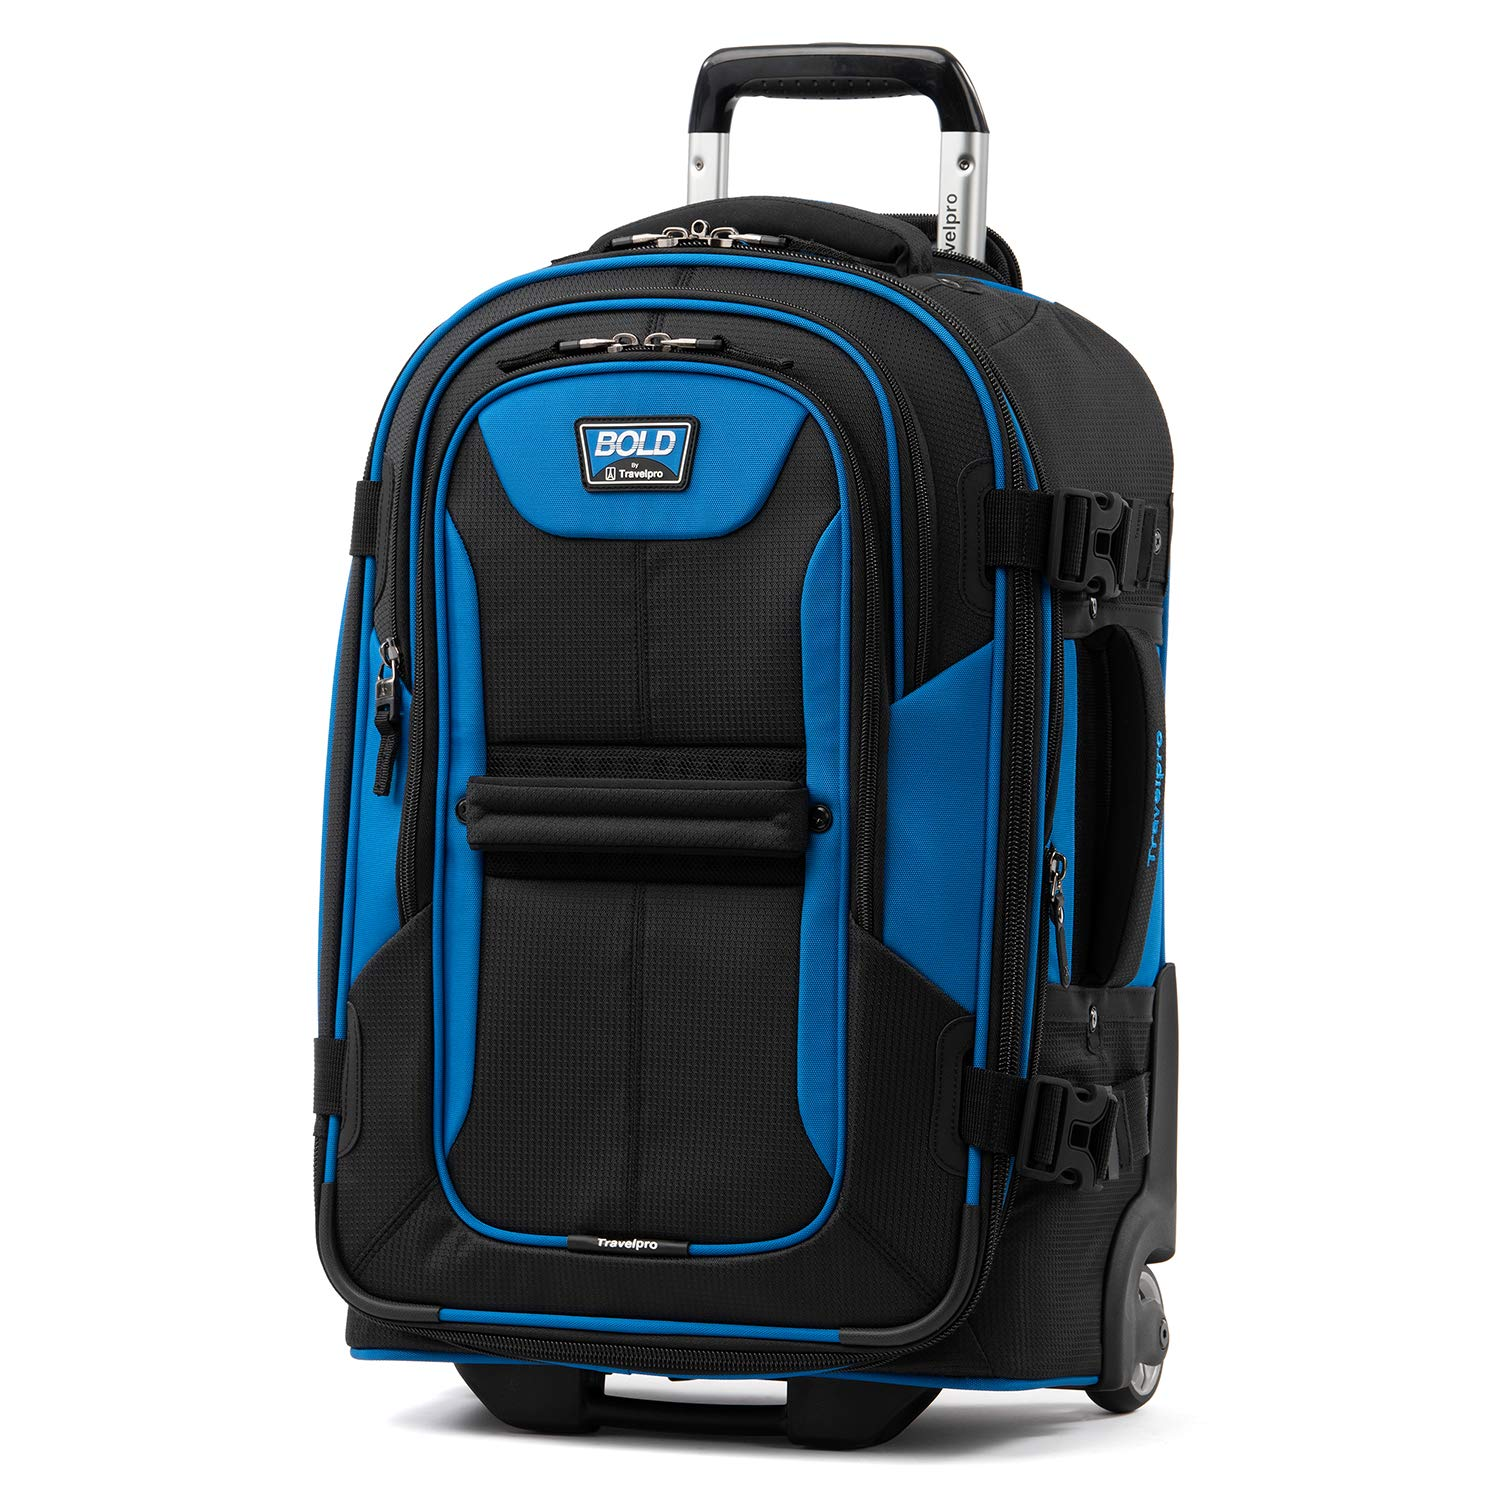 Travelpro Carry On, Blue/Black